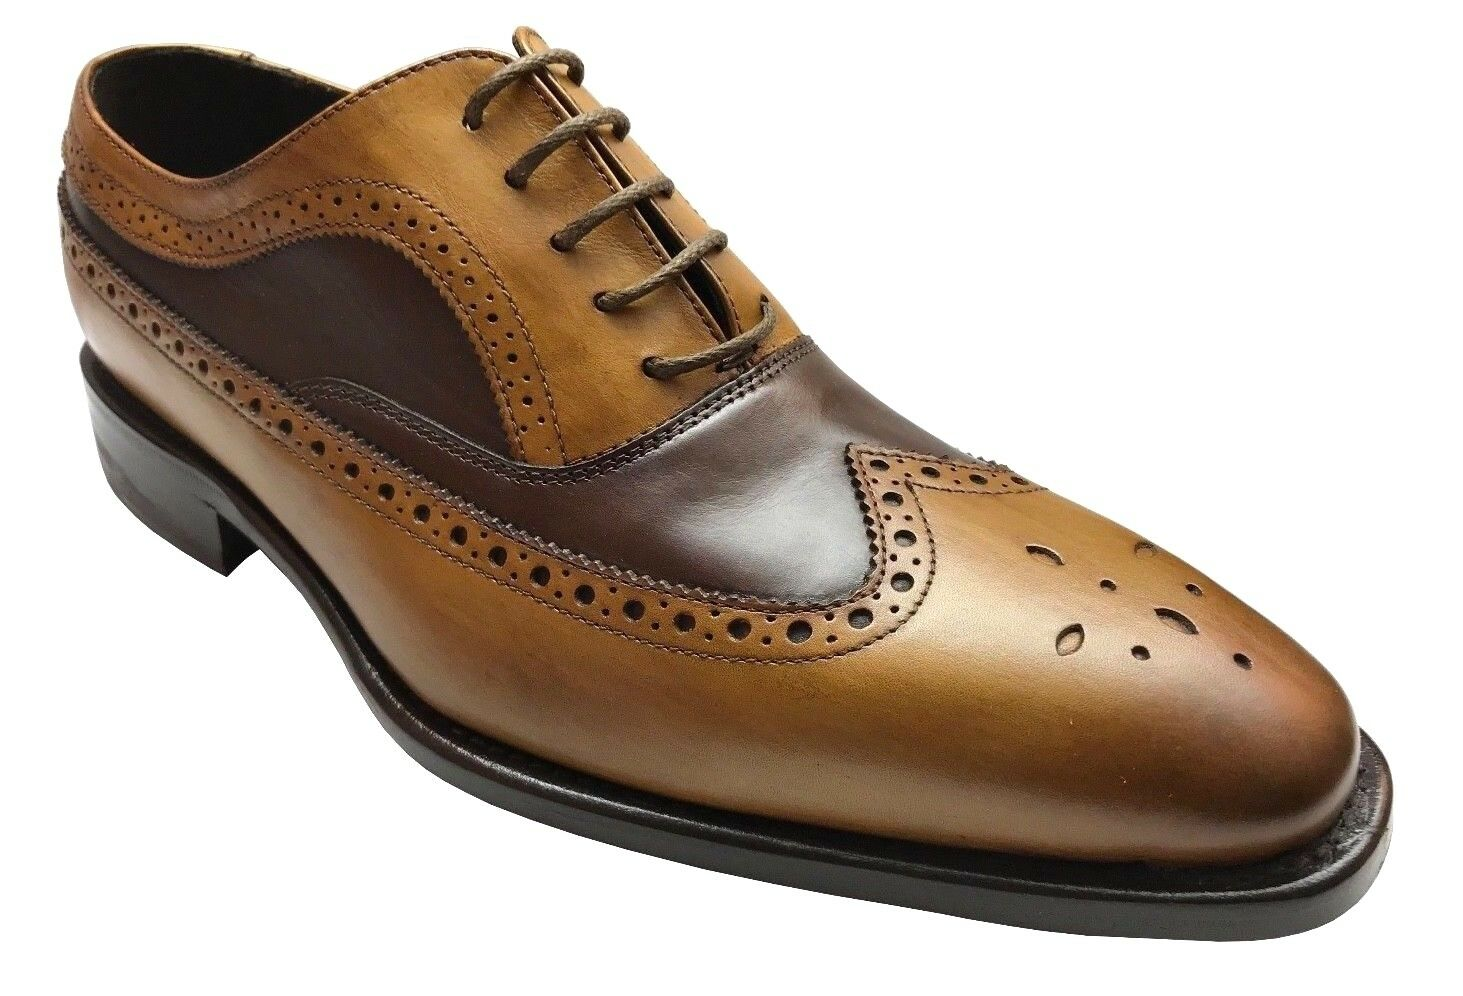 Calzoleria Toscana Men's Oxford Chestnut Brown Leather Hand Crafted shoes H200